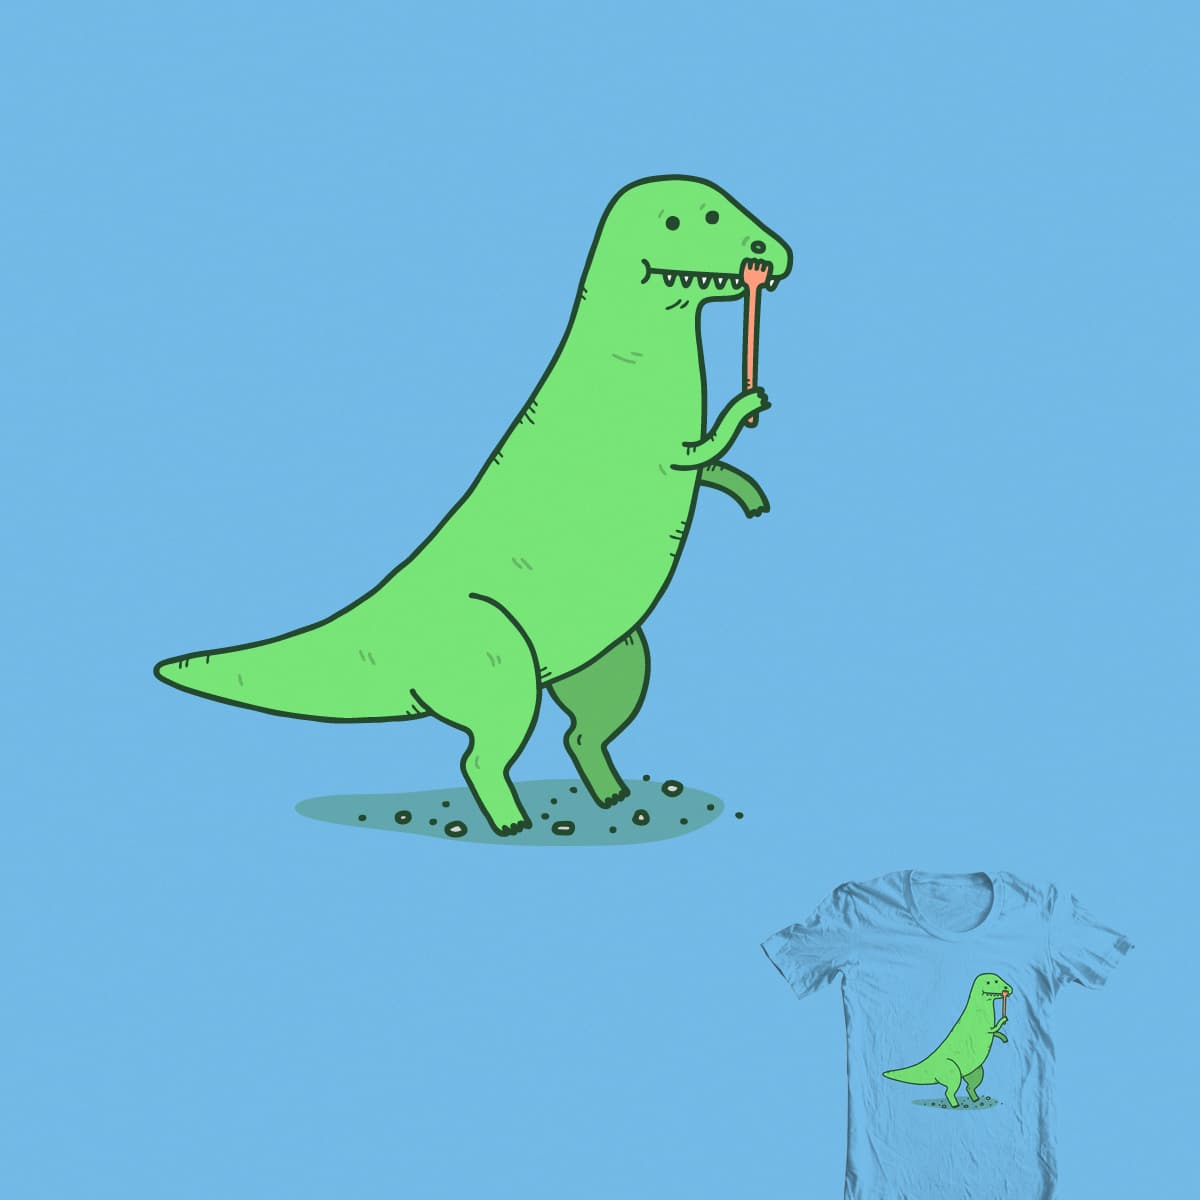 T-Rex Has An Itch by Haasbroek on Threadless